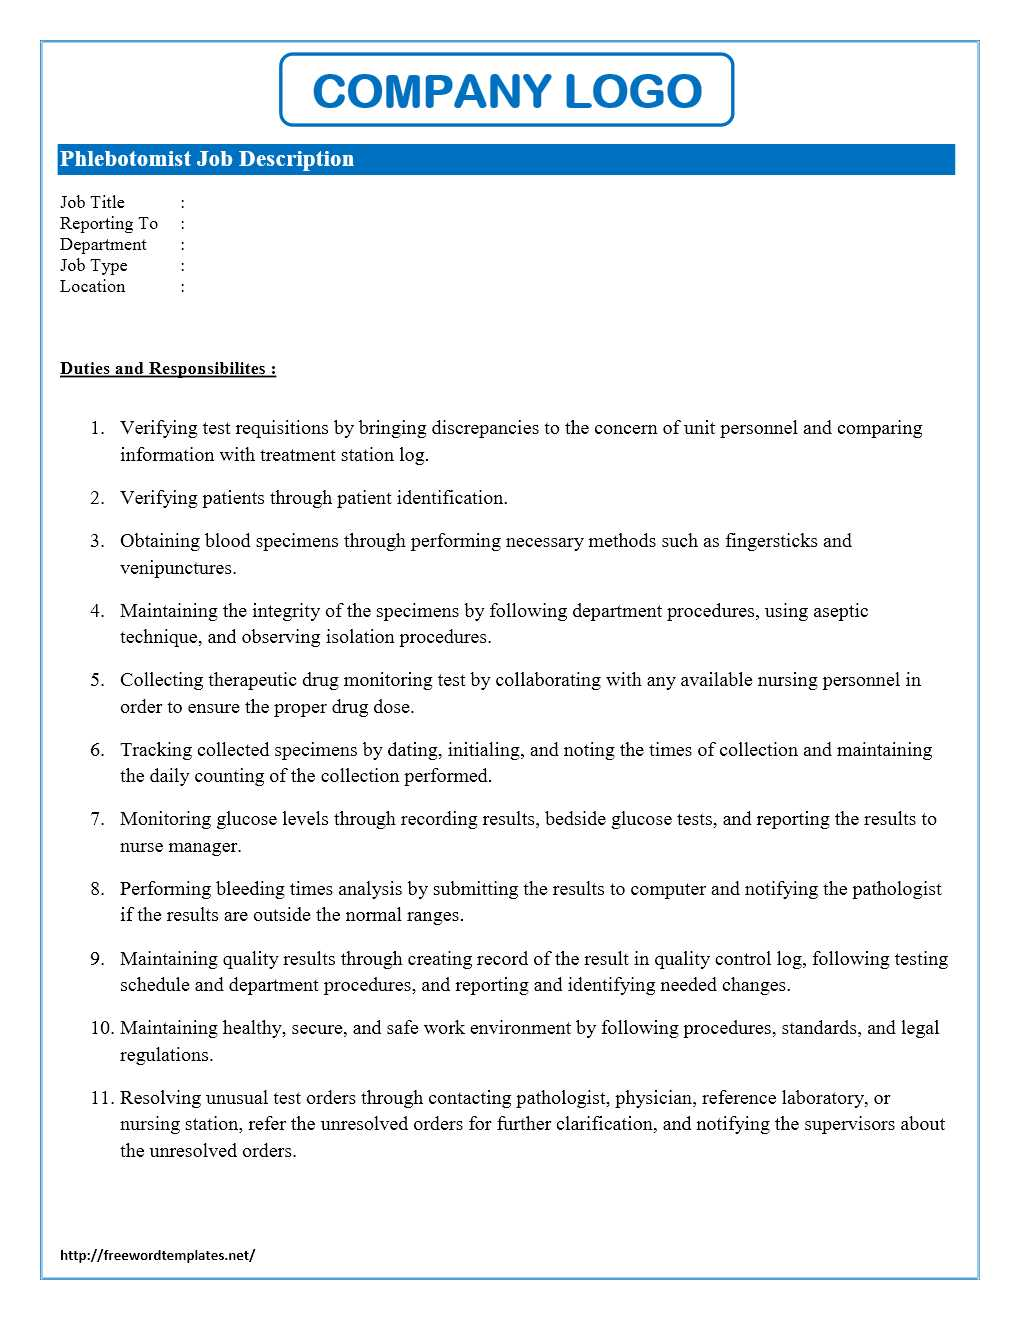 phlebotomist job description wordtemplates net phlebotomist job description template for word